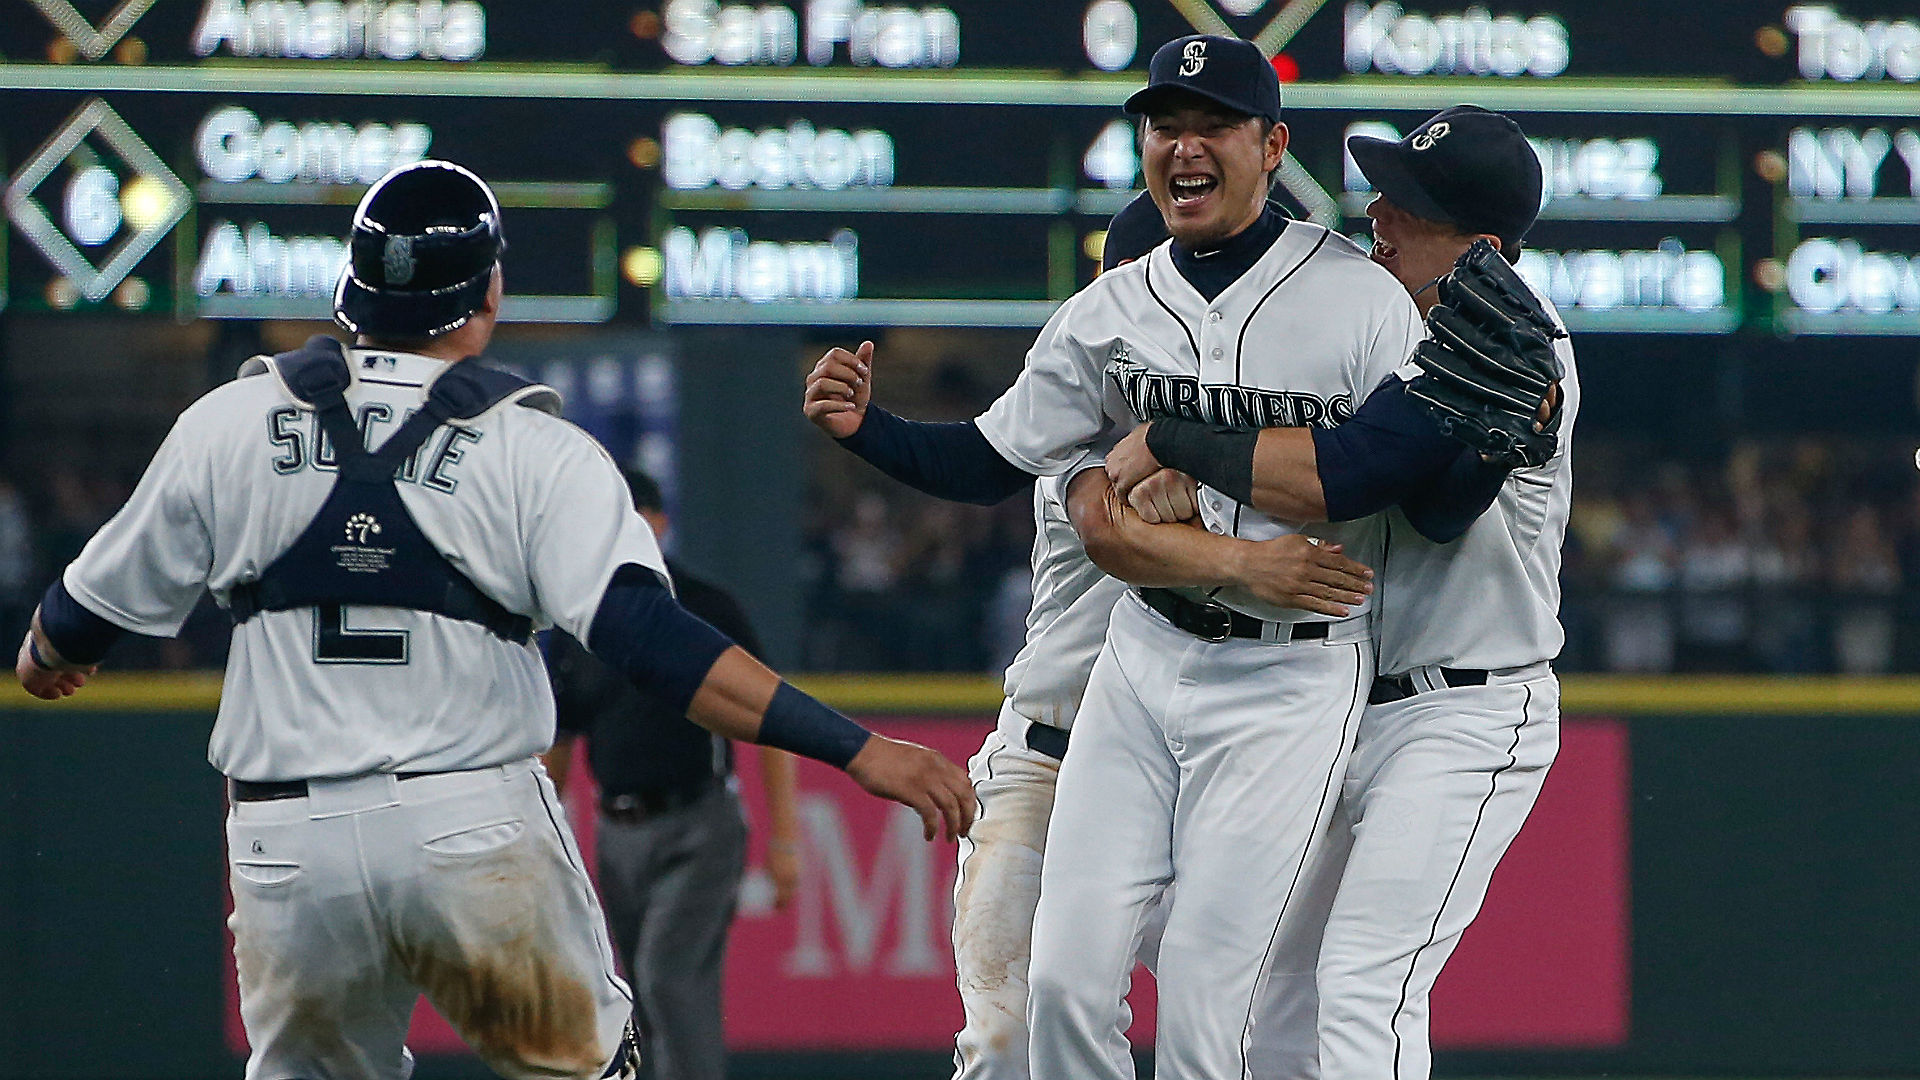 Hisashi Iwakuma celebrates after throwing no-hitter